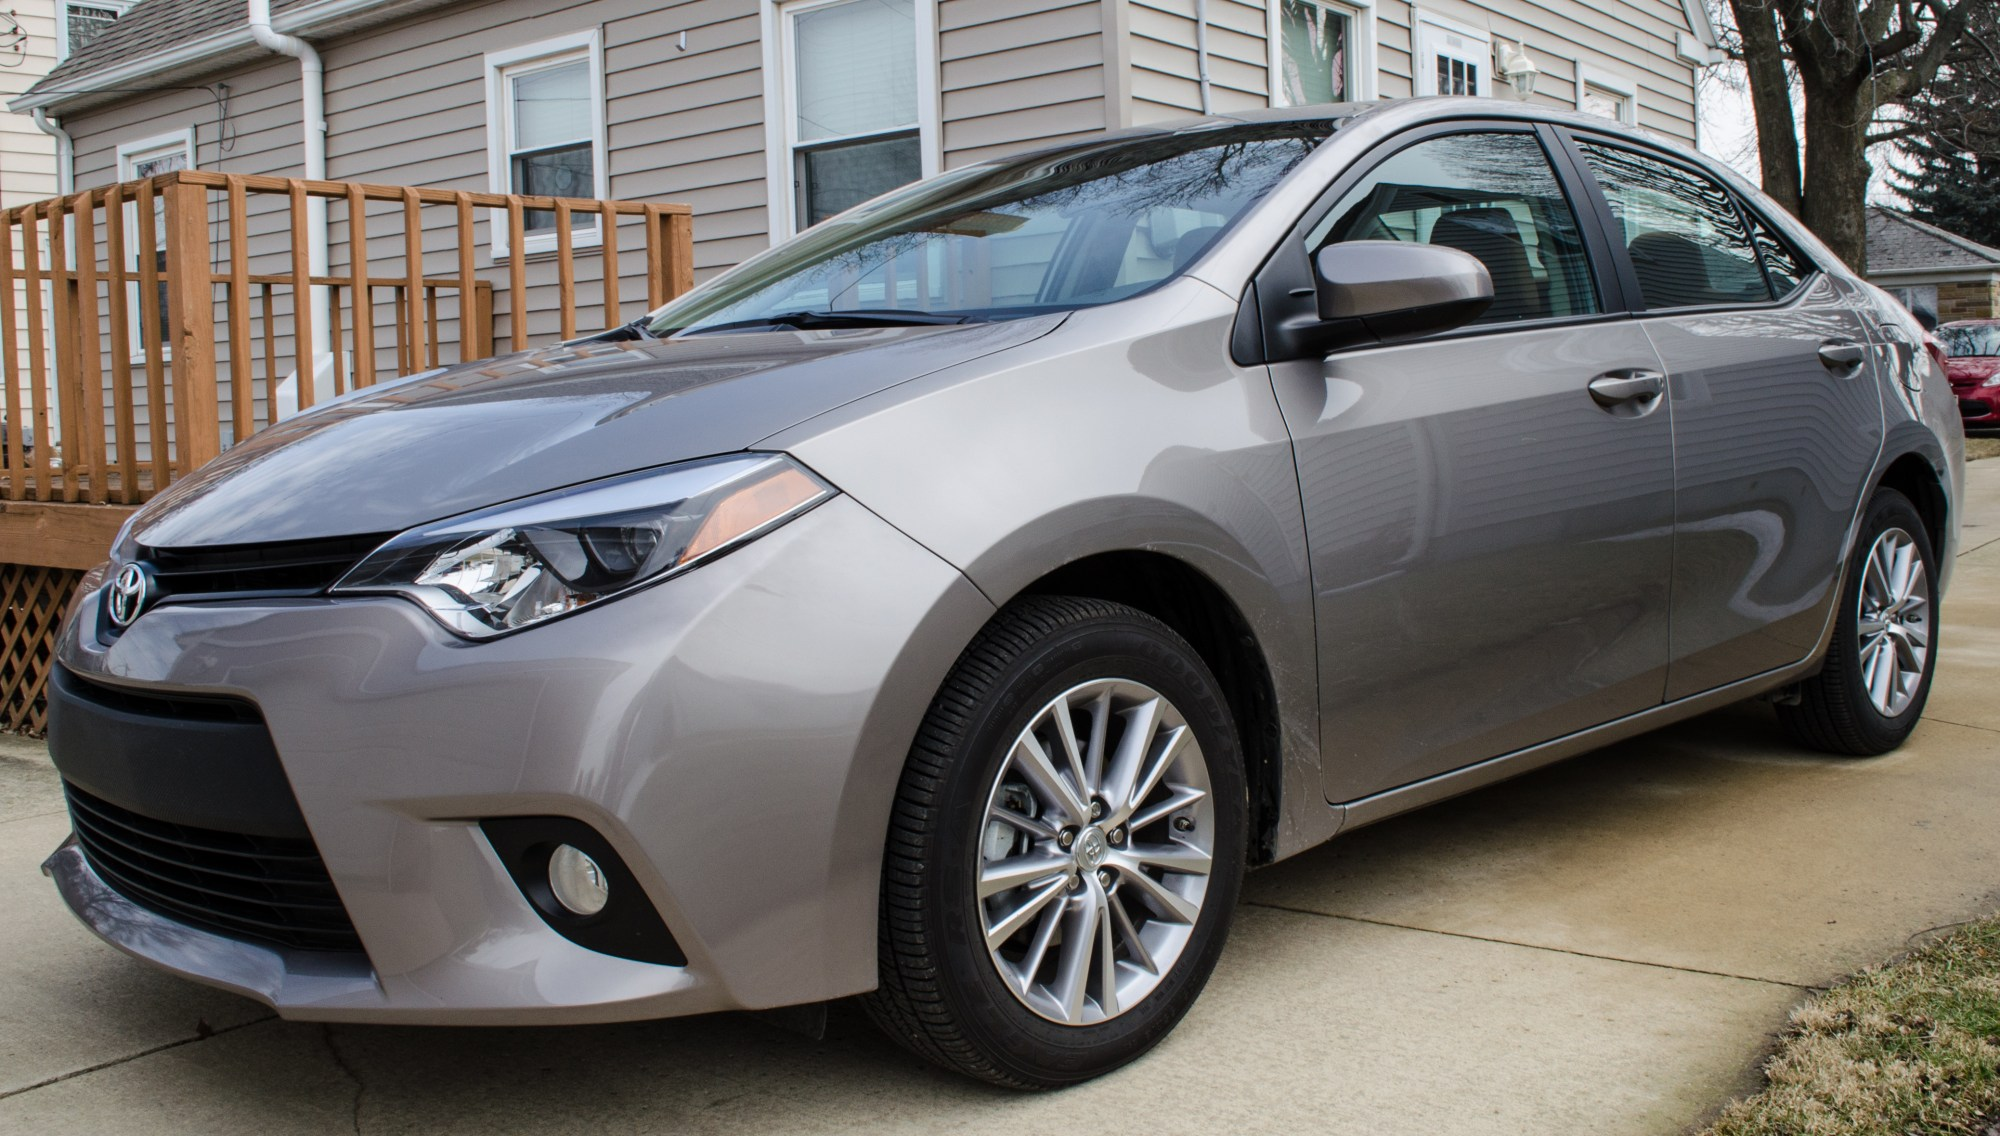 hight resolution of motor review fast facts manufacturer toyota model corolla